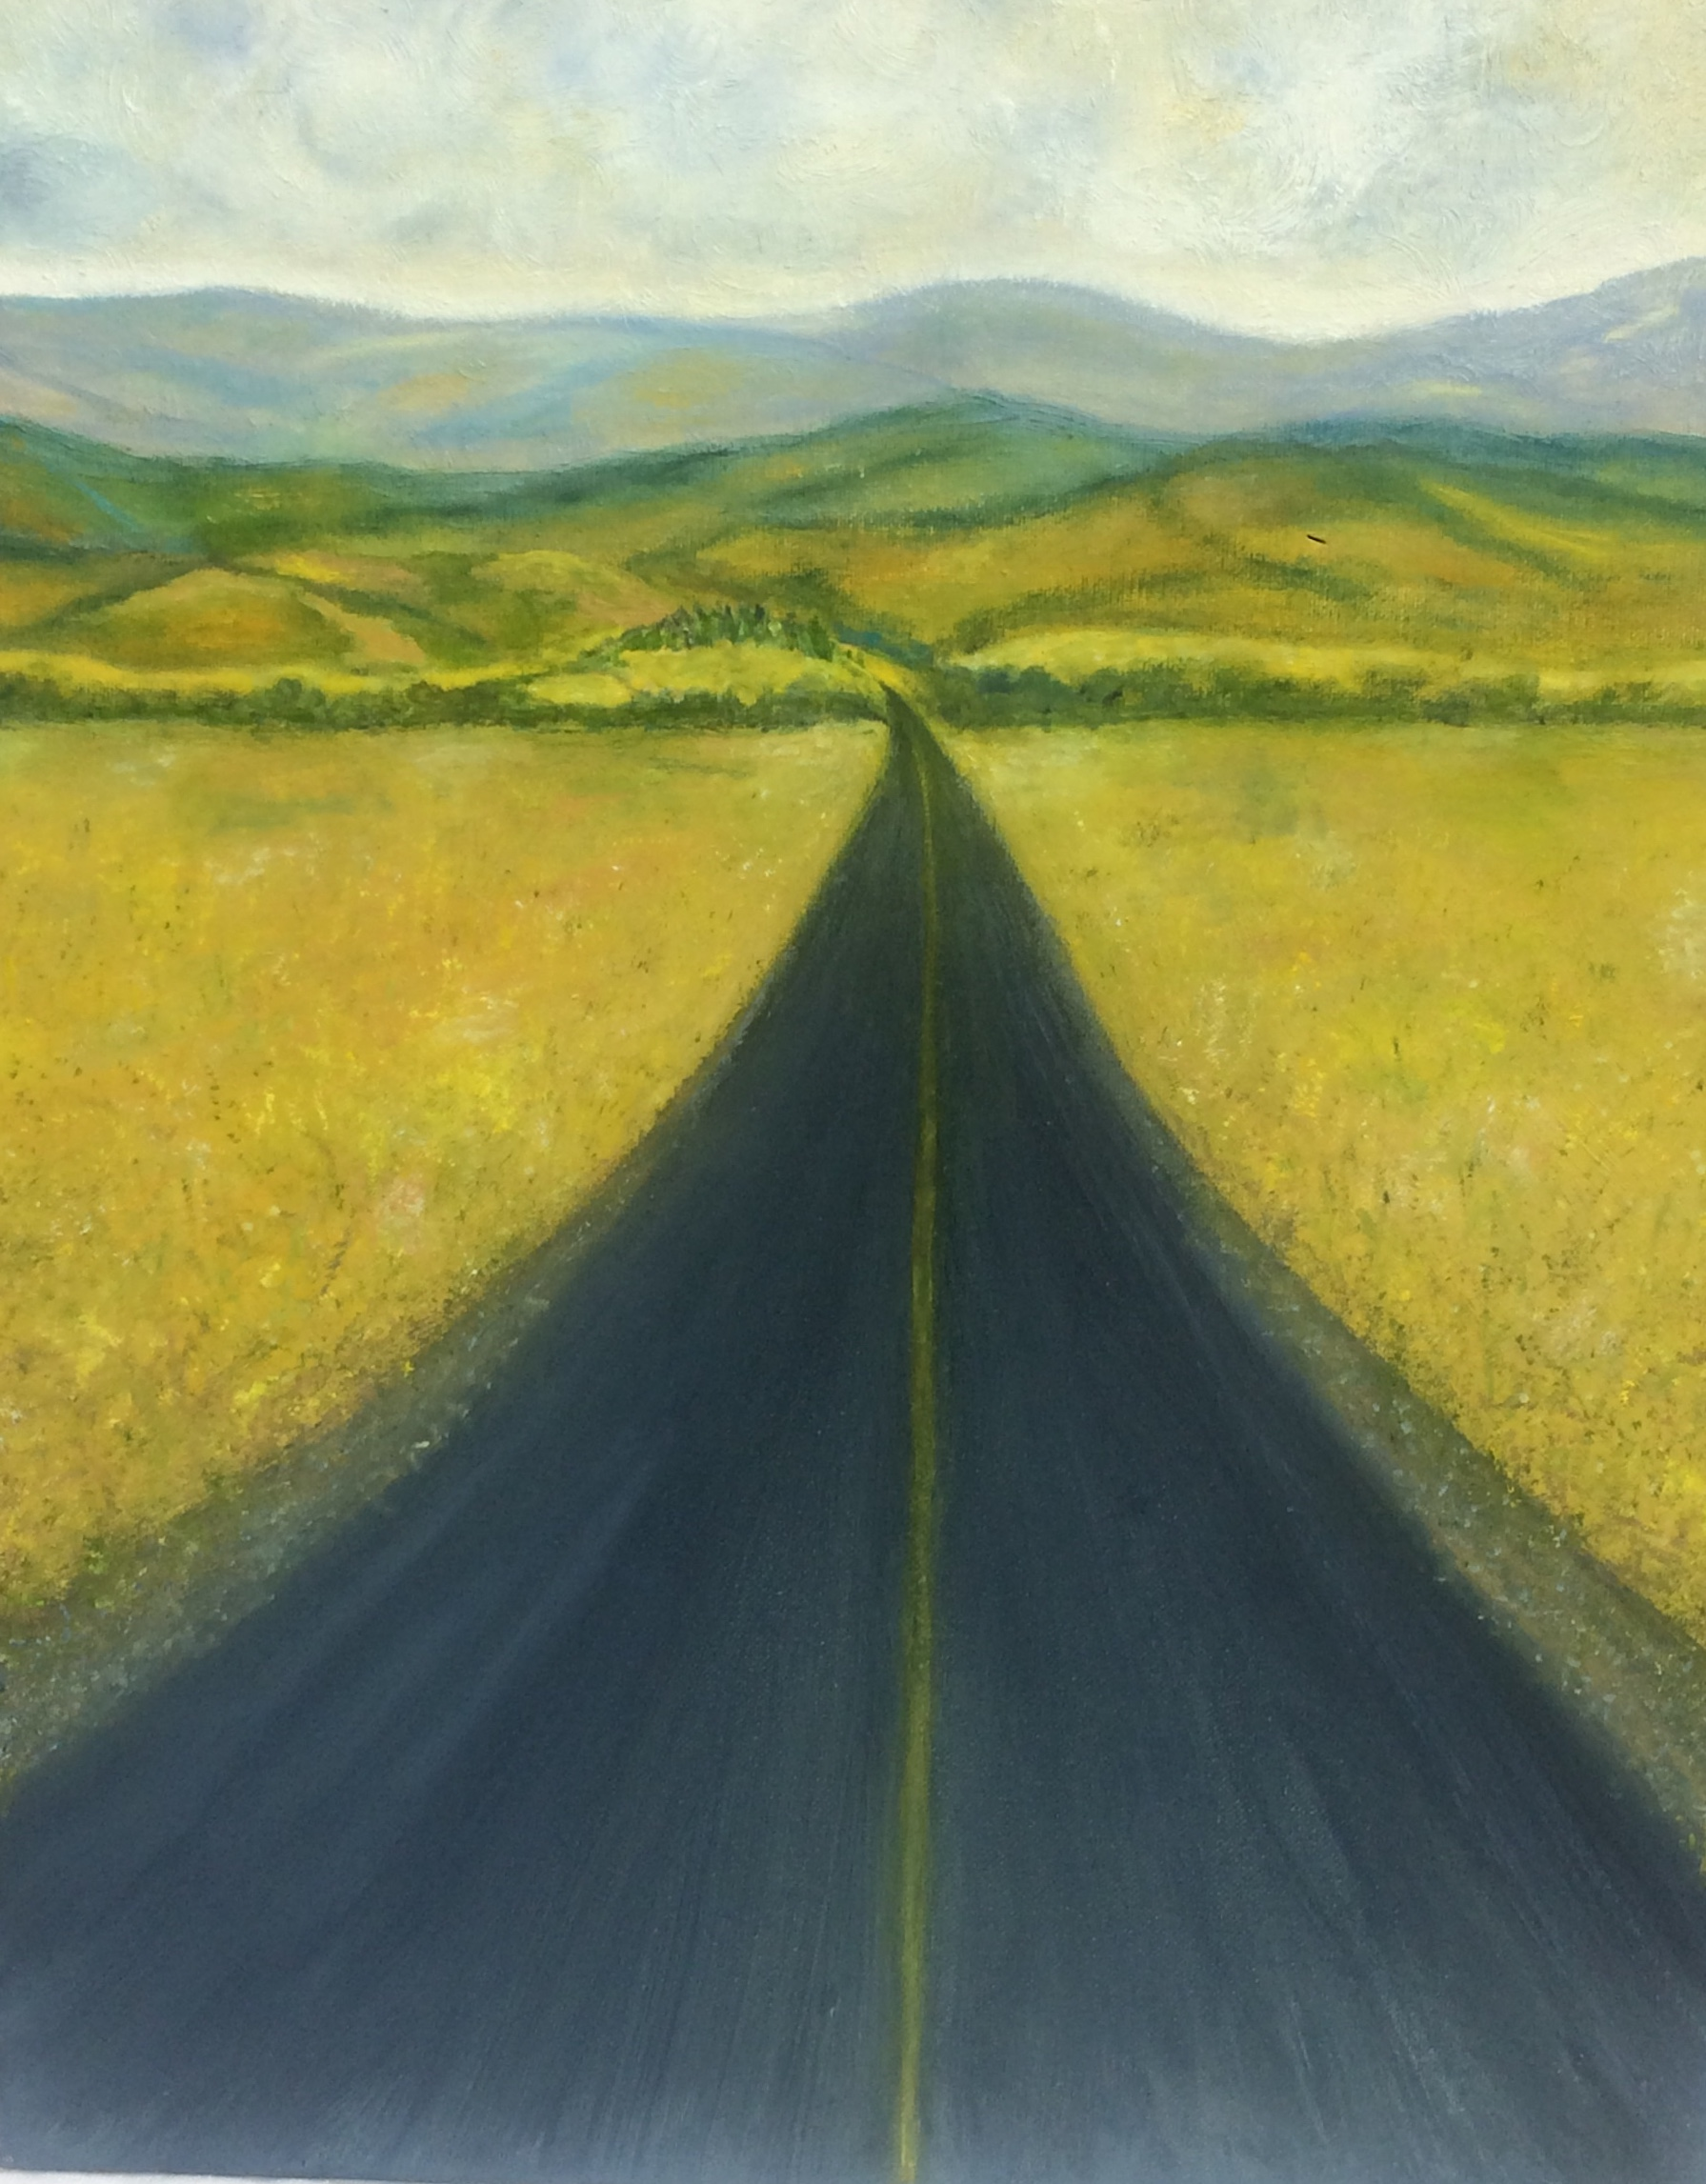 Country Road - 16 x 20 - Oil on Canvas - $375